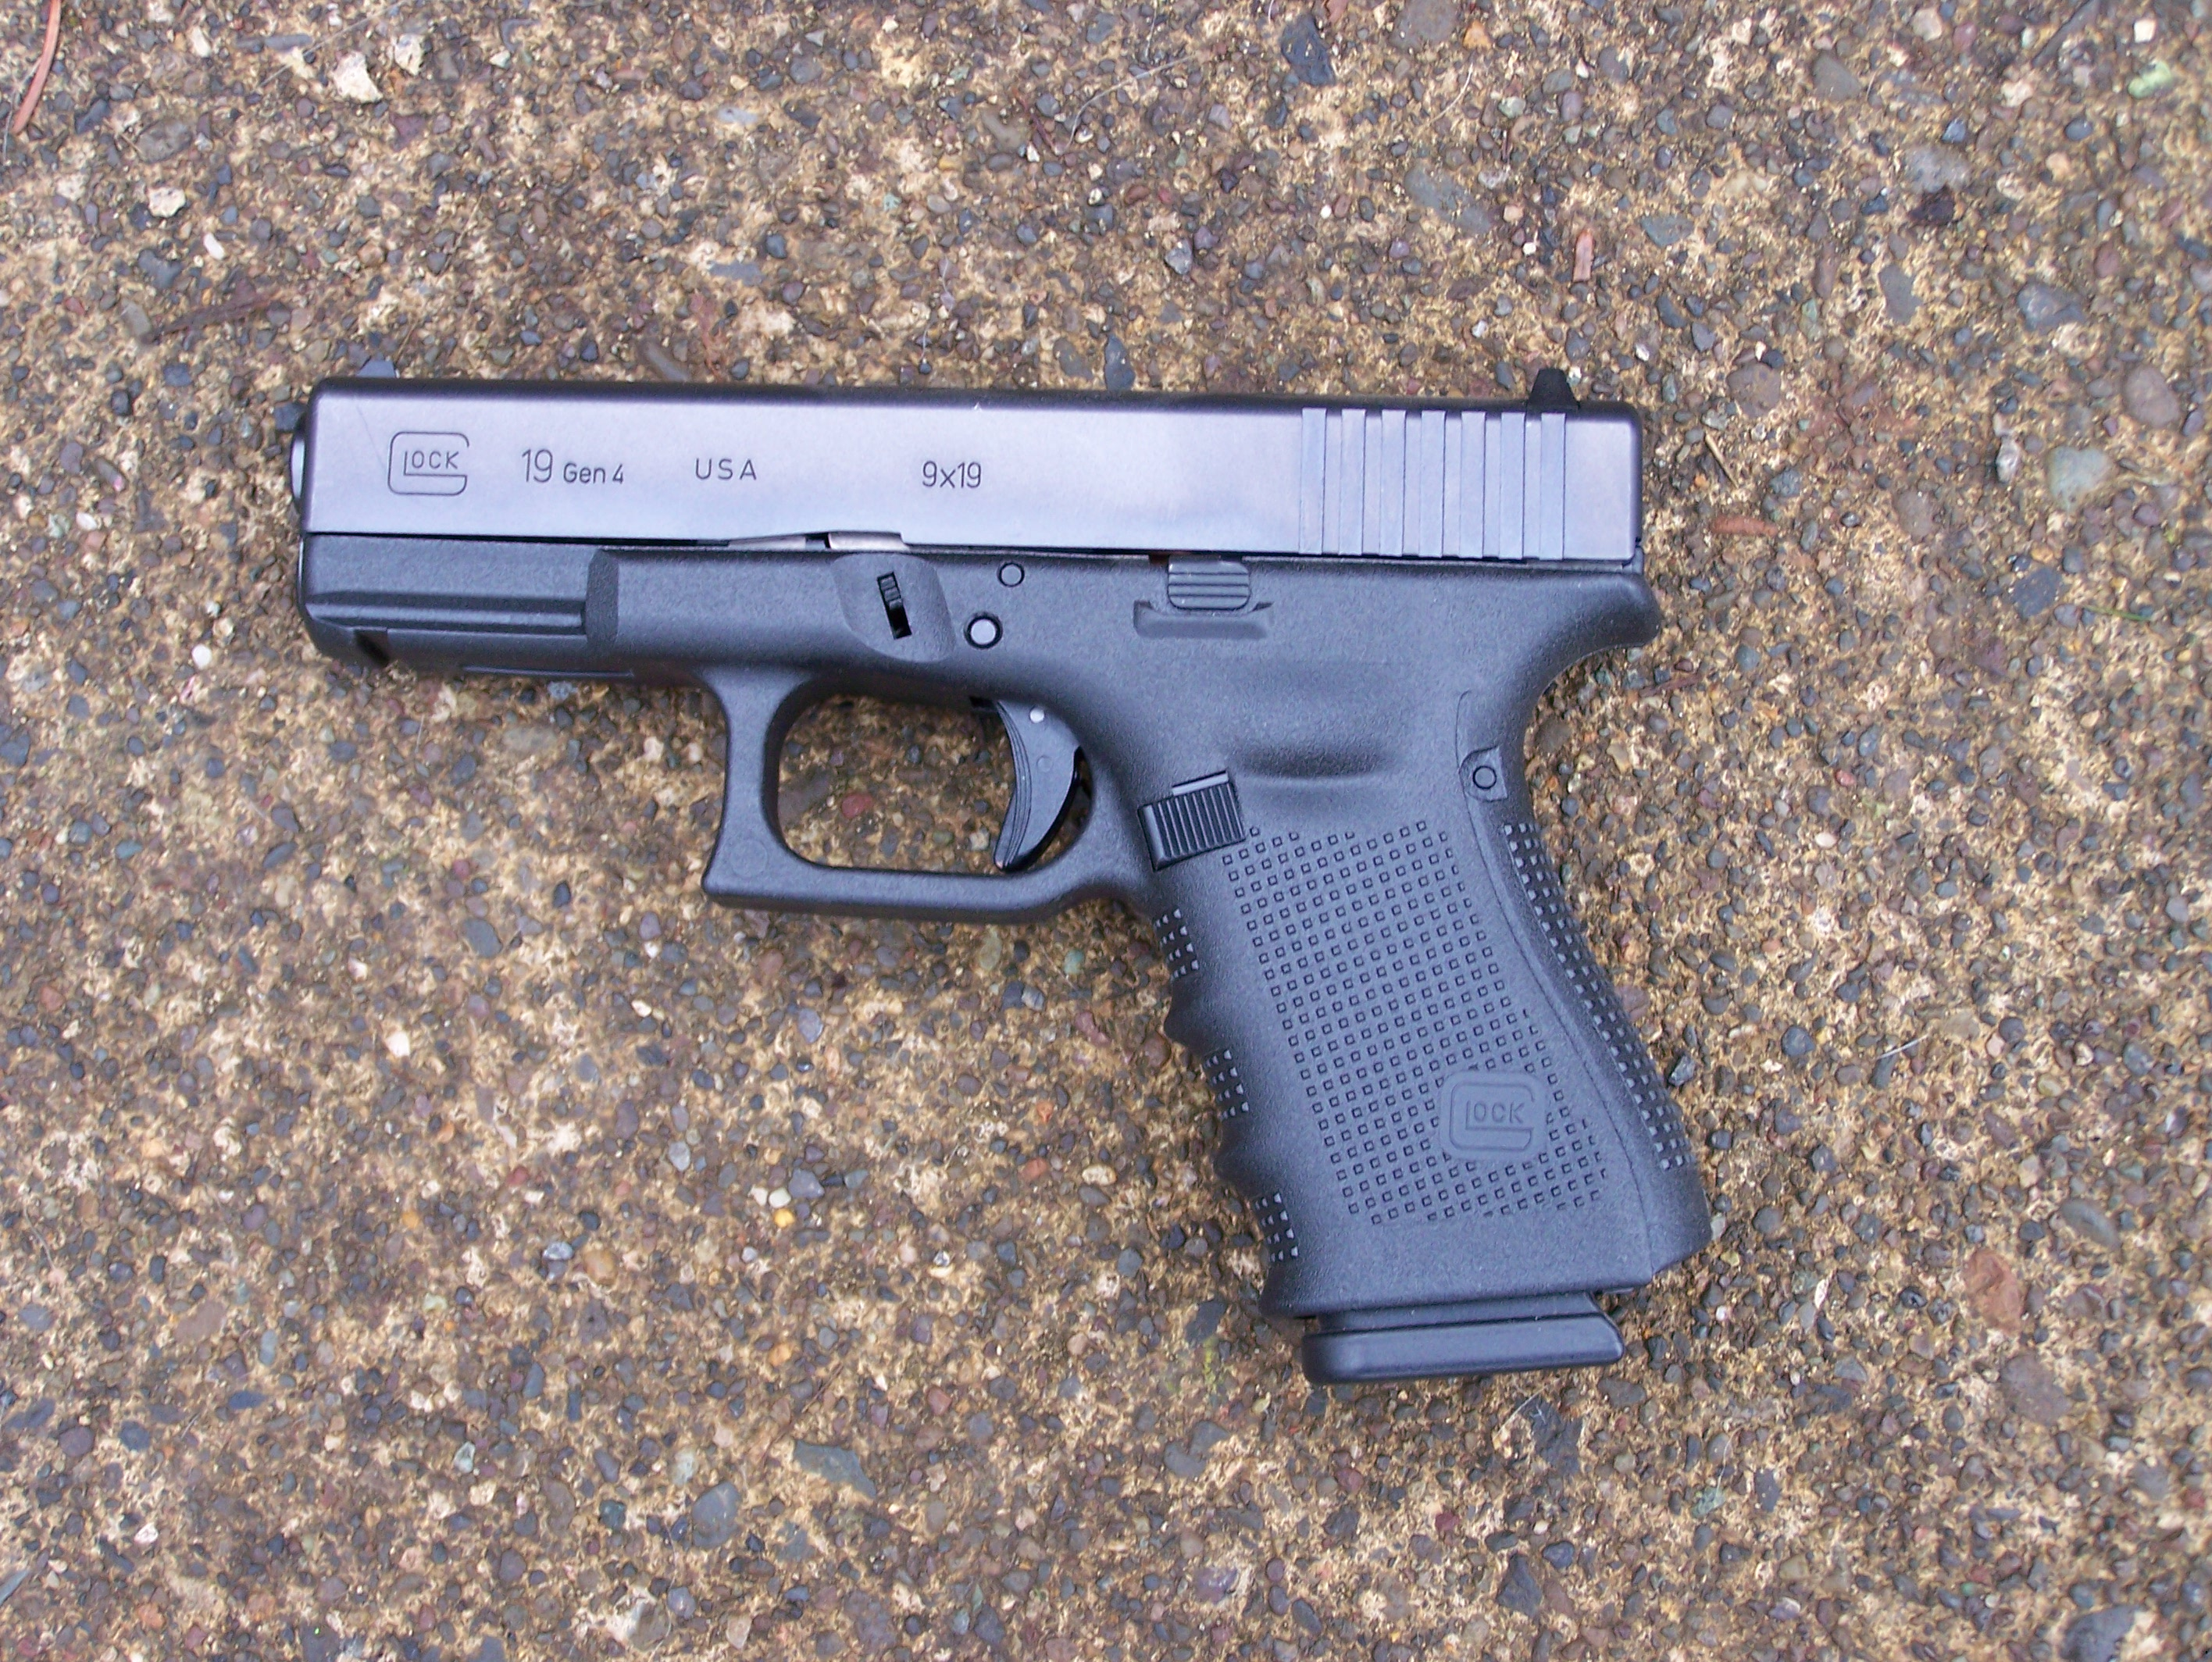 GLOCK 19 Gen 4 9mm Pistol Review - AllOutdoor comAllOutdoor com